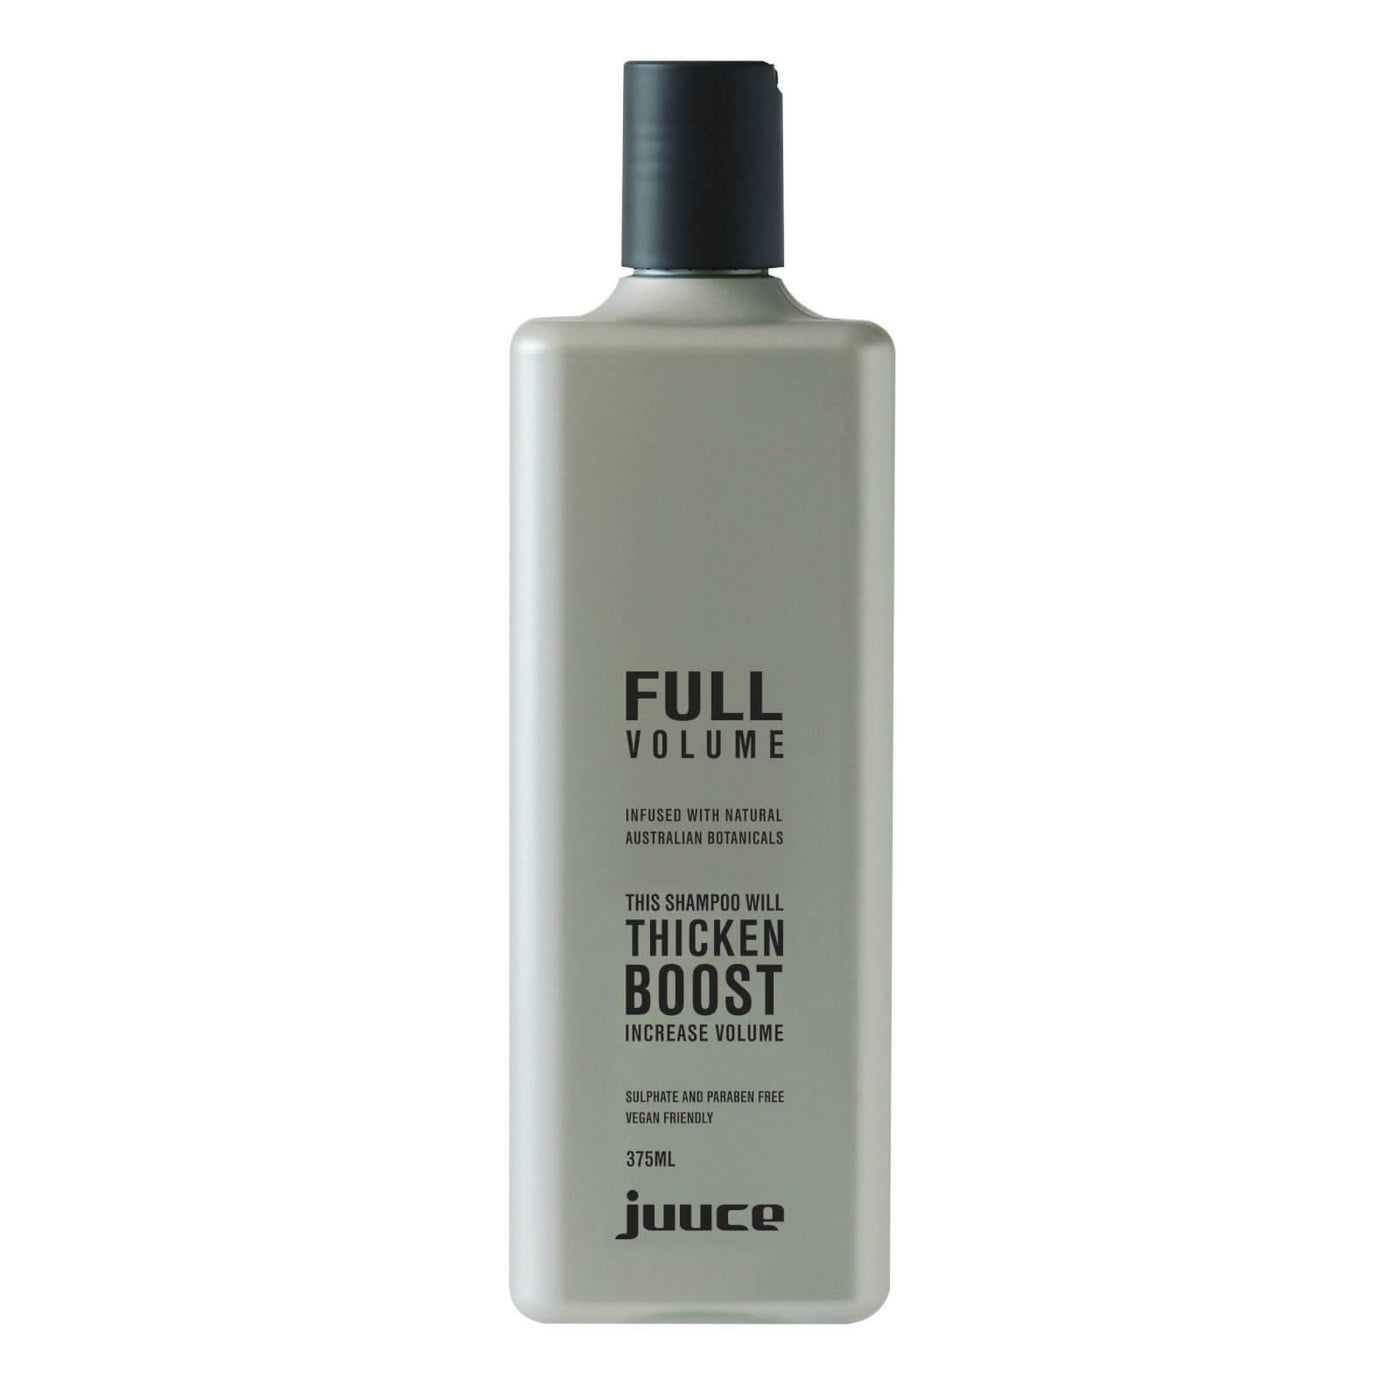 Juuce Full Volume Shampoo